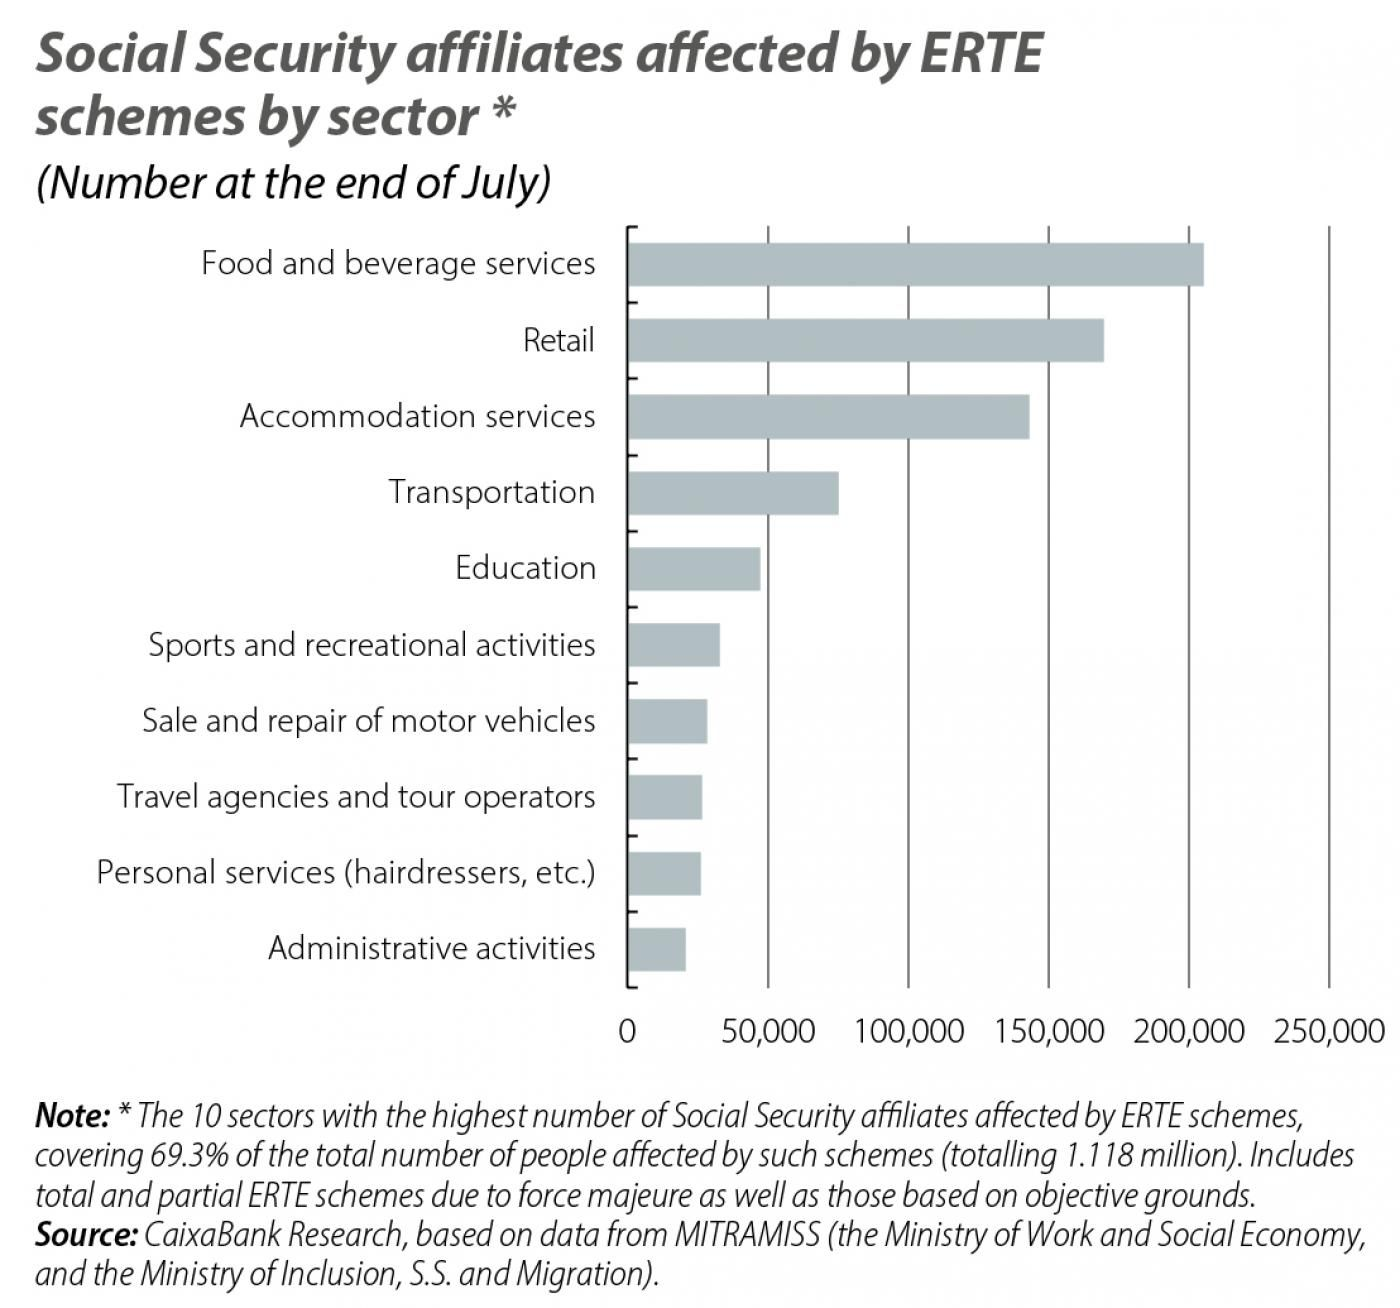 Social Security affiliates affected by ERTE schemes by sector